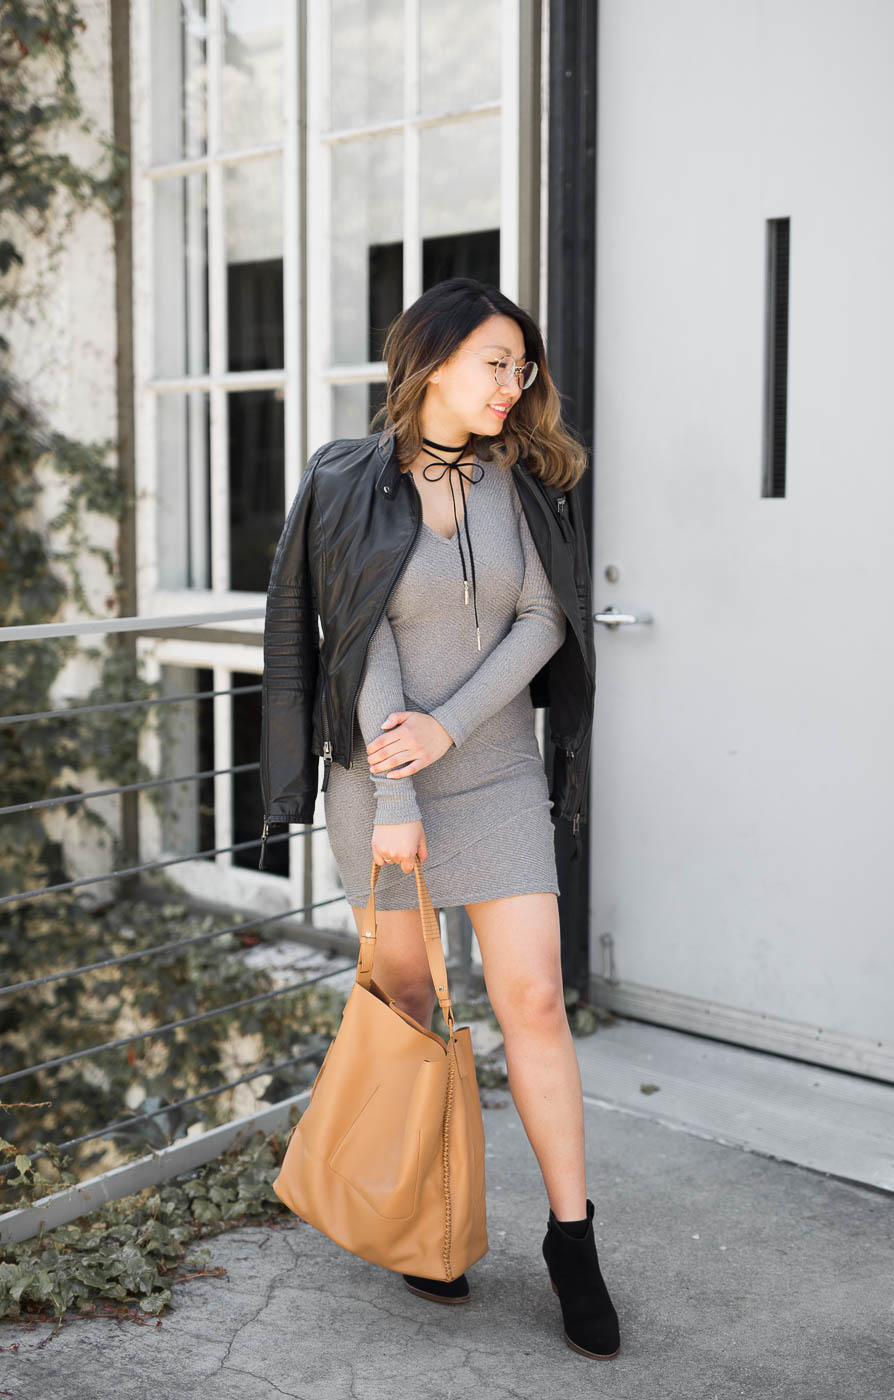 Zara leather jacket & All Saints leather tote | The Chic Diary